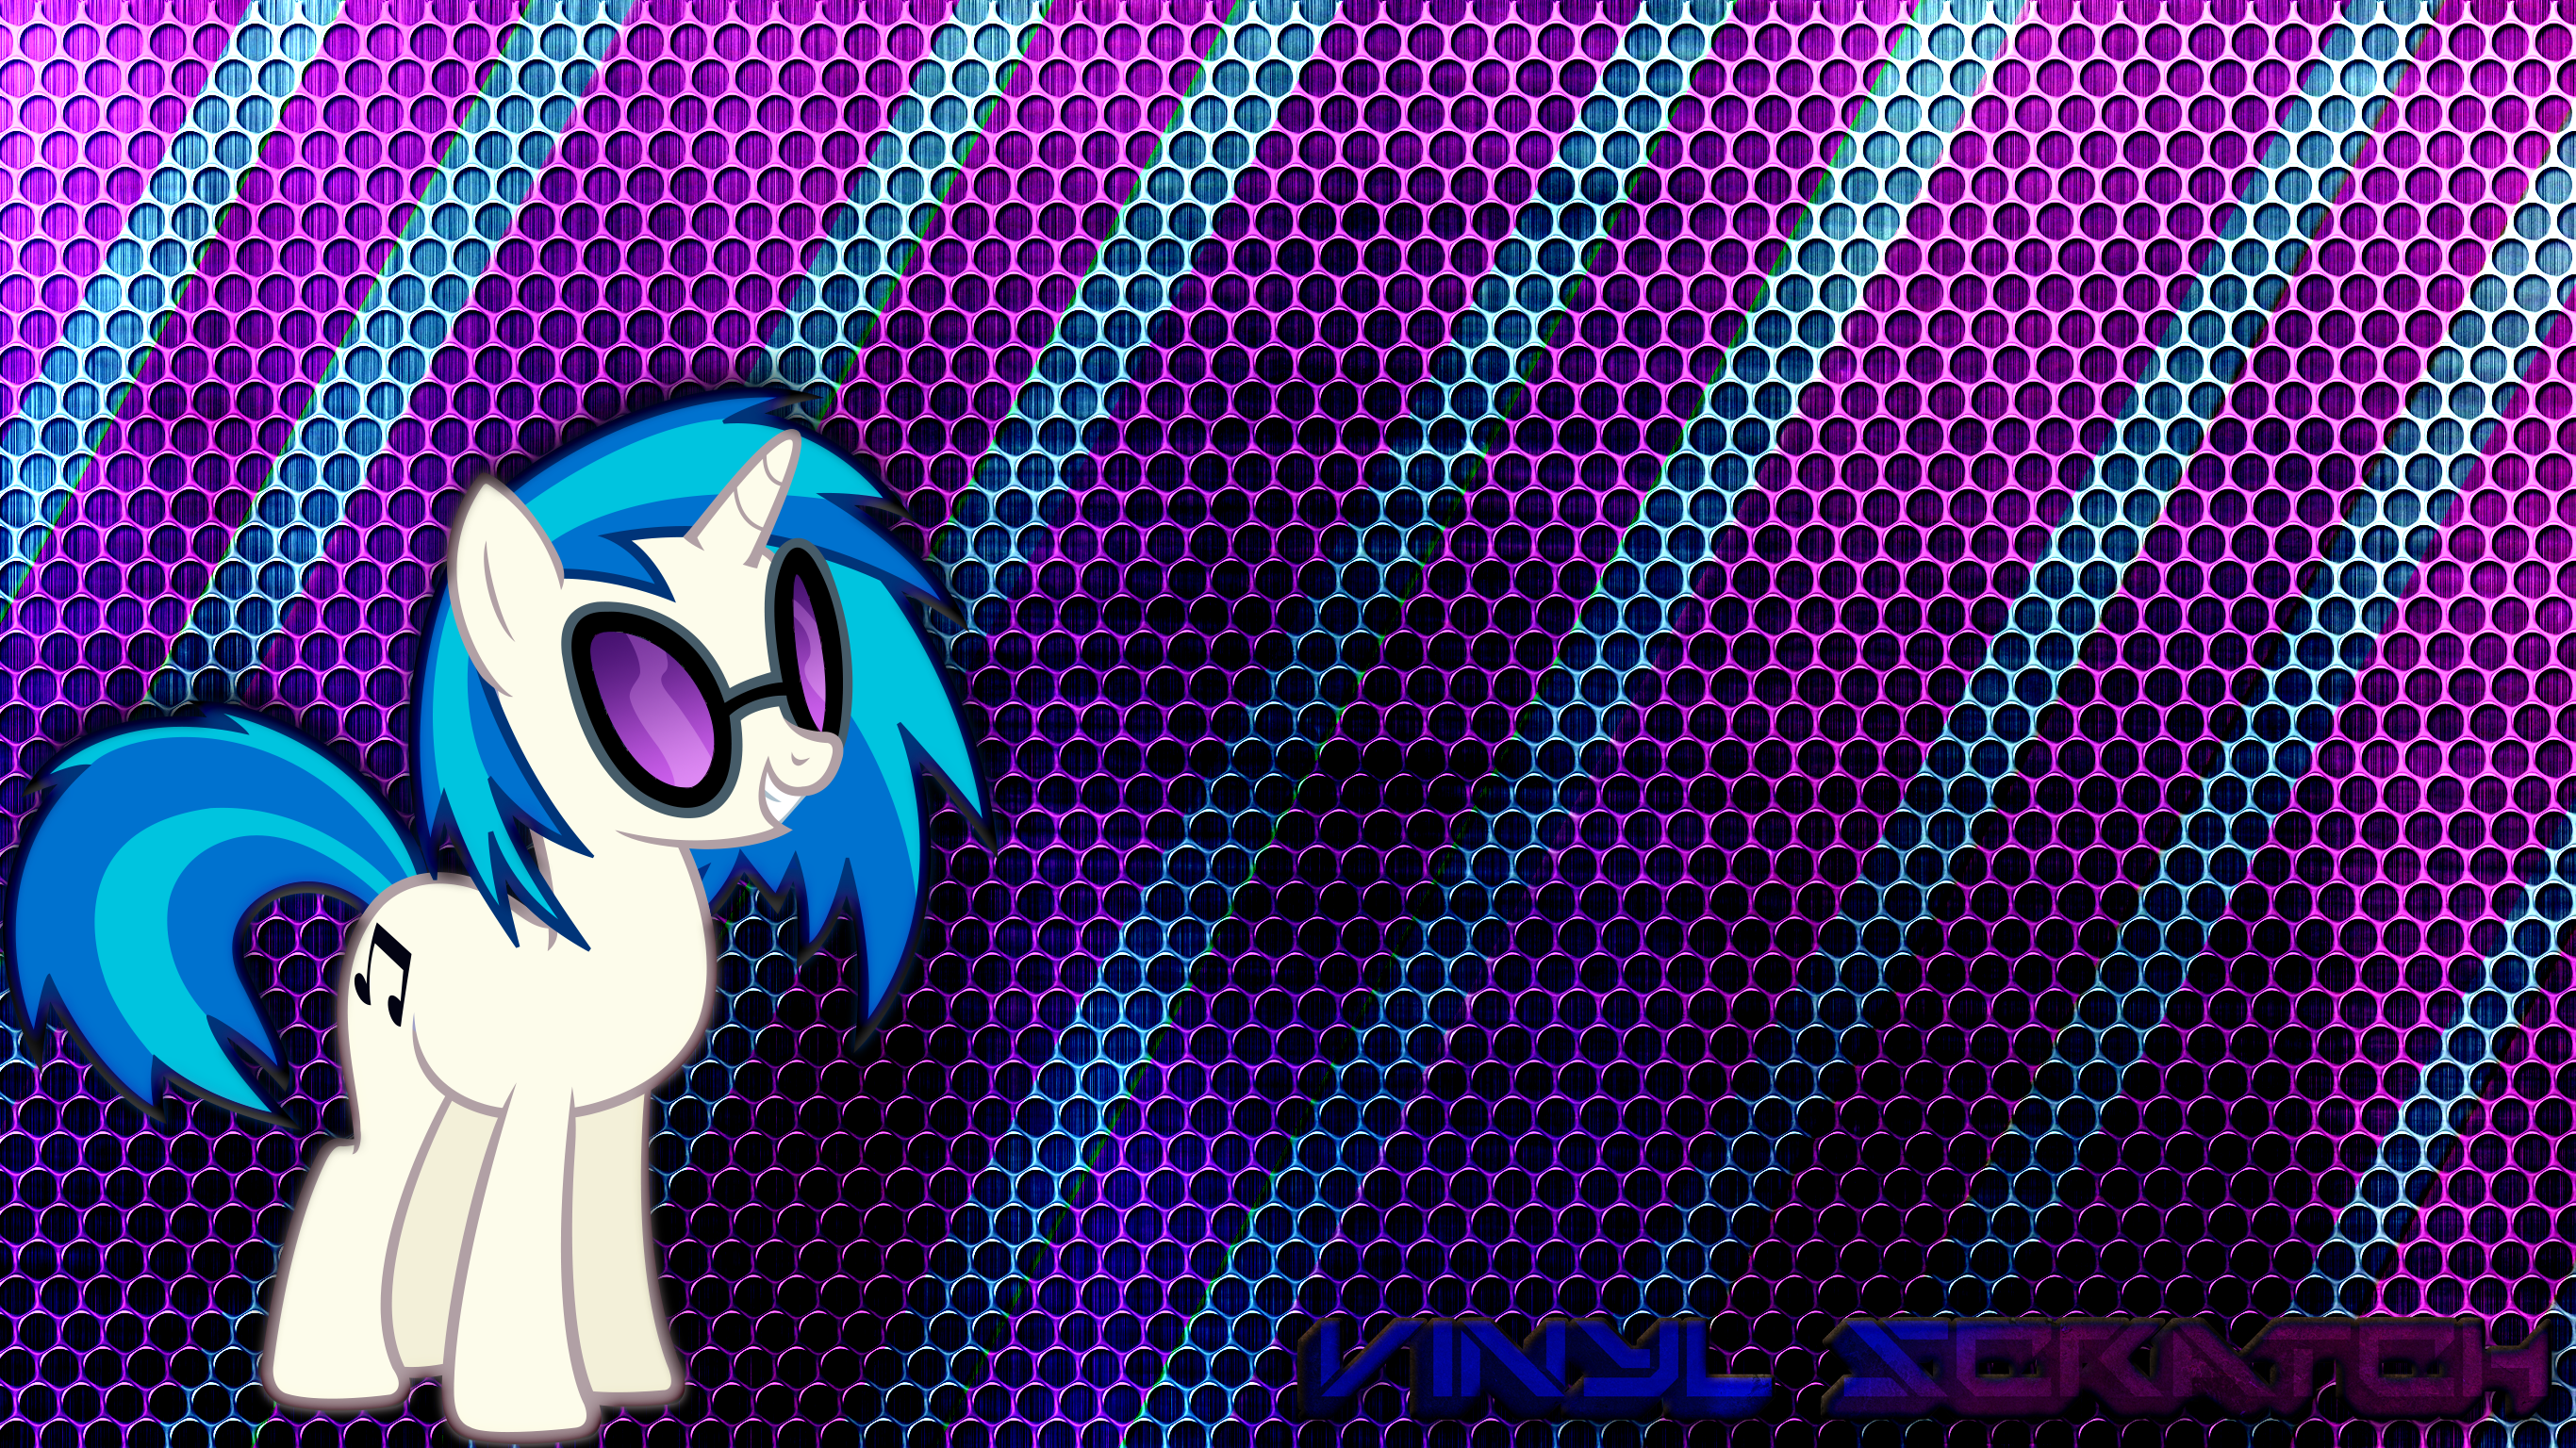 Vinyl Scratch Wallpaper 5 by JamesG2498